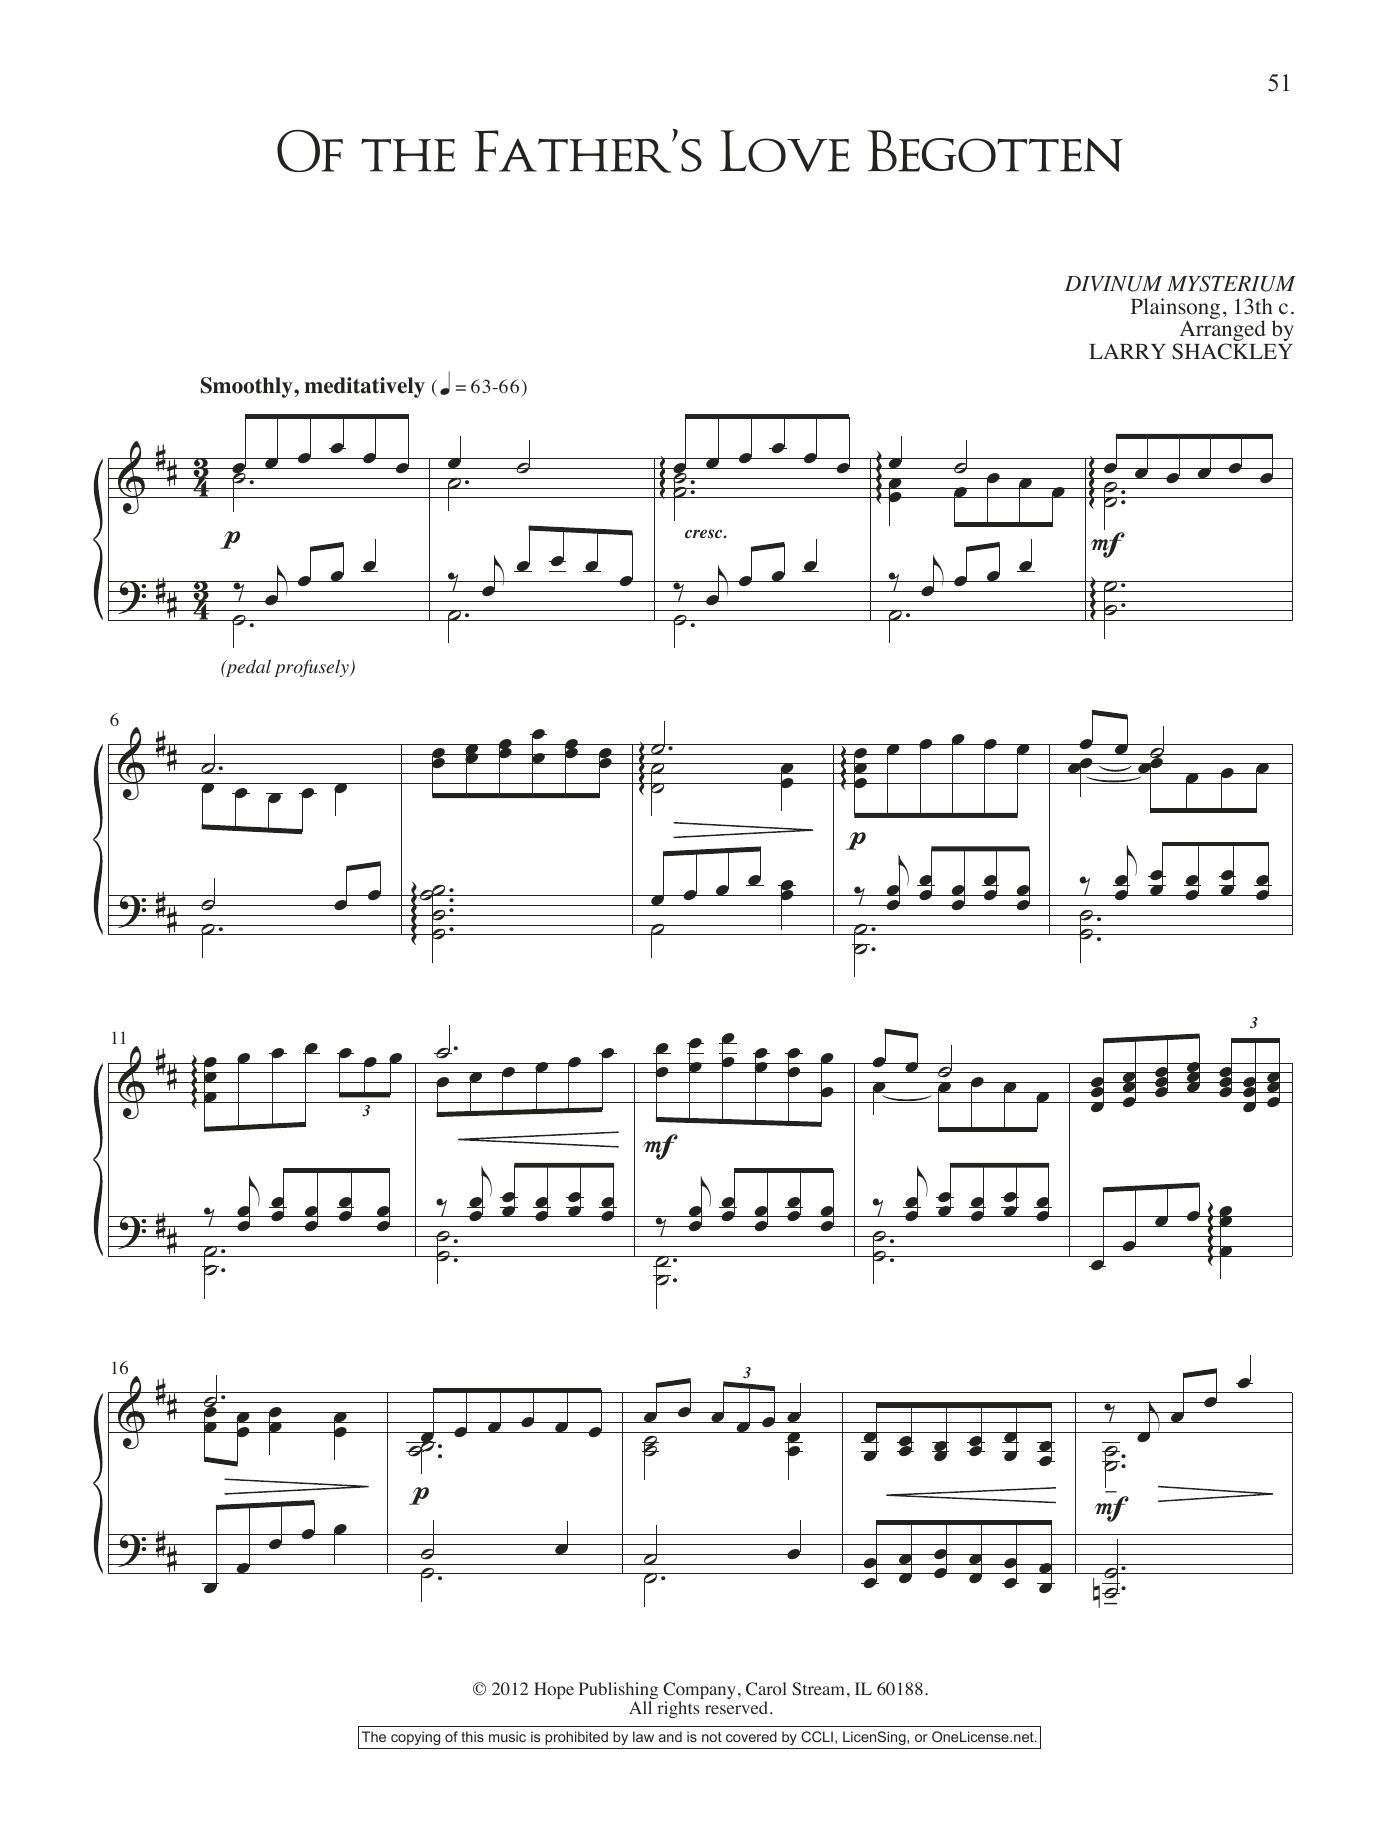 Larry Shackley Of the Father's Love Begotten sheet music notes and chords. Download Printable PDF.